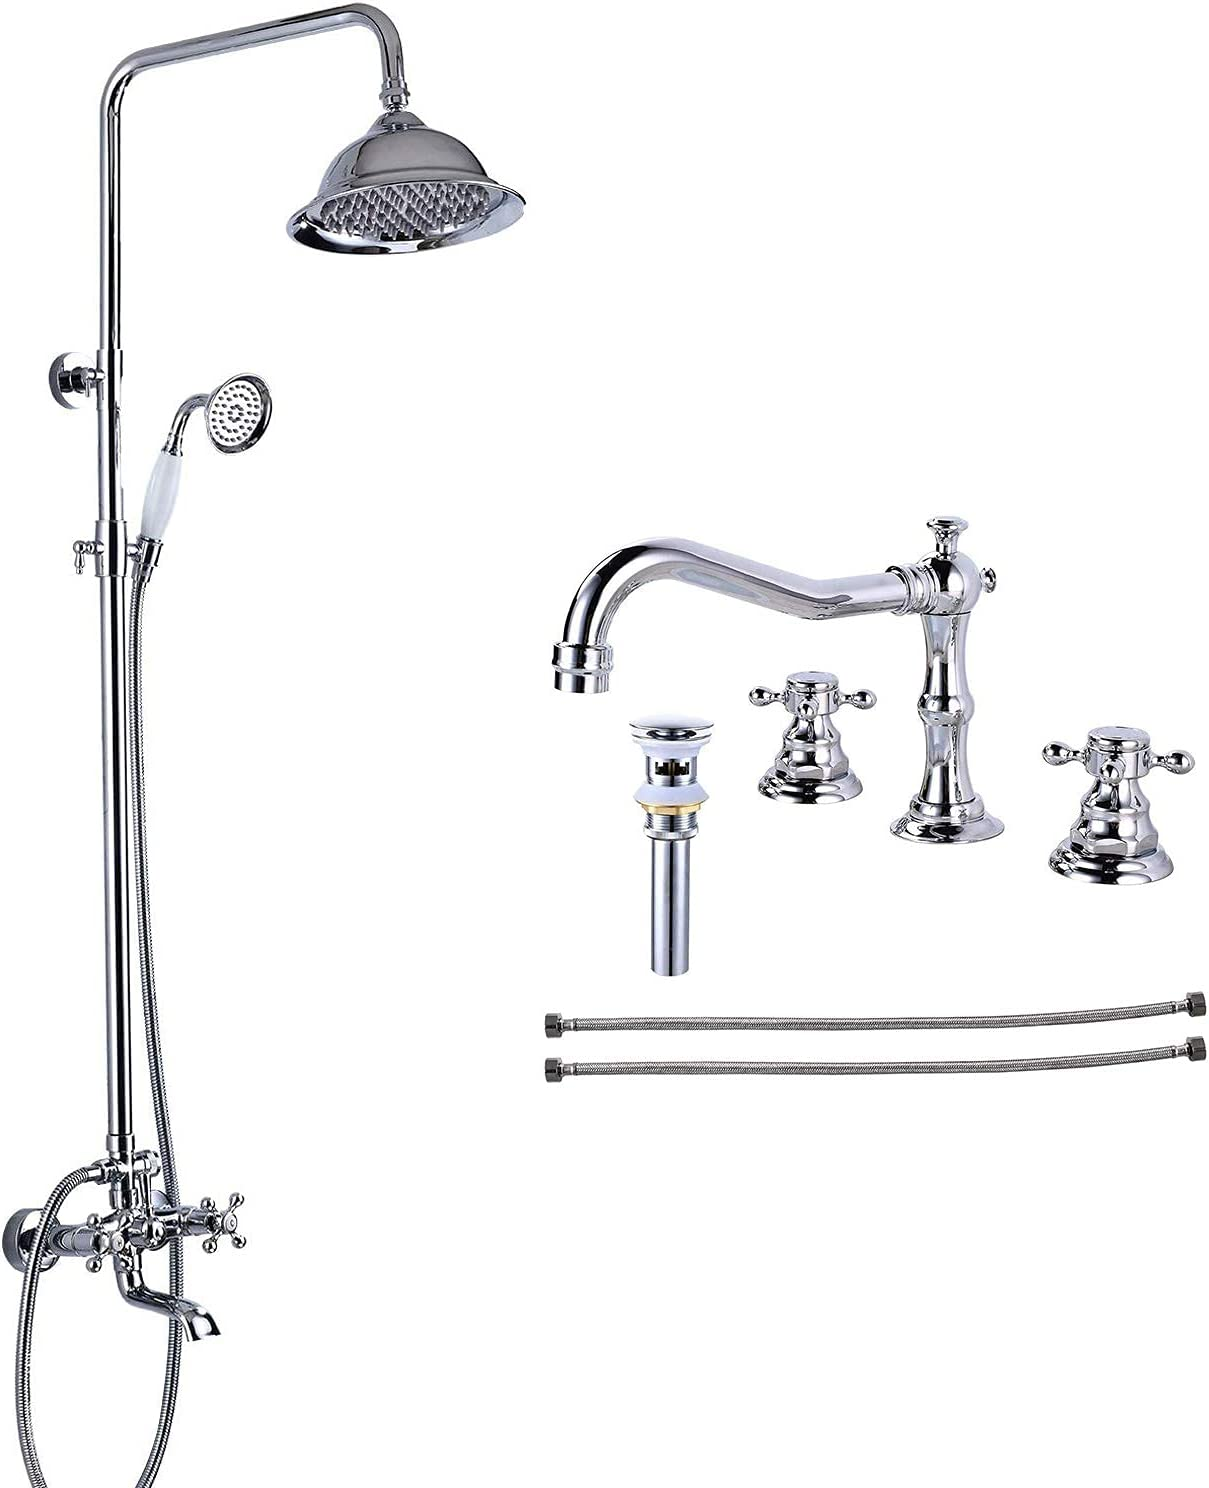 Chrome Polished Shower Fixture 8 Ultra-Cheap Deals Max 42% OFF Head Rainfall with Inch